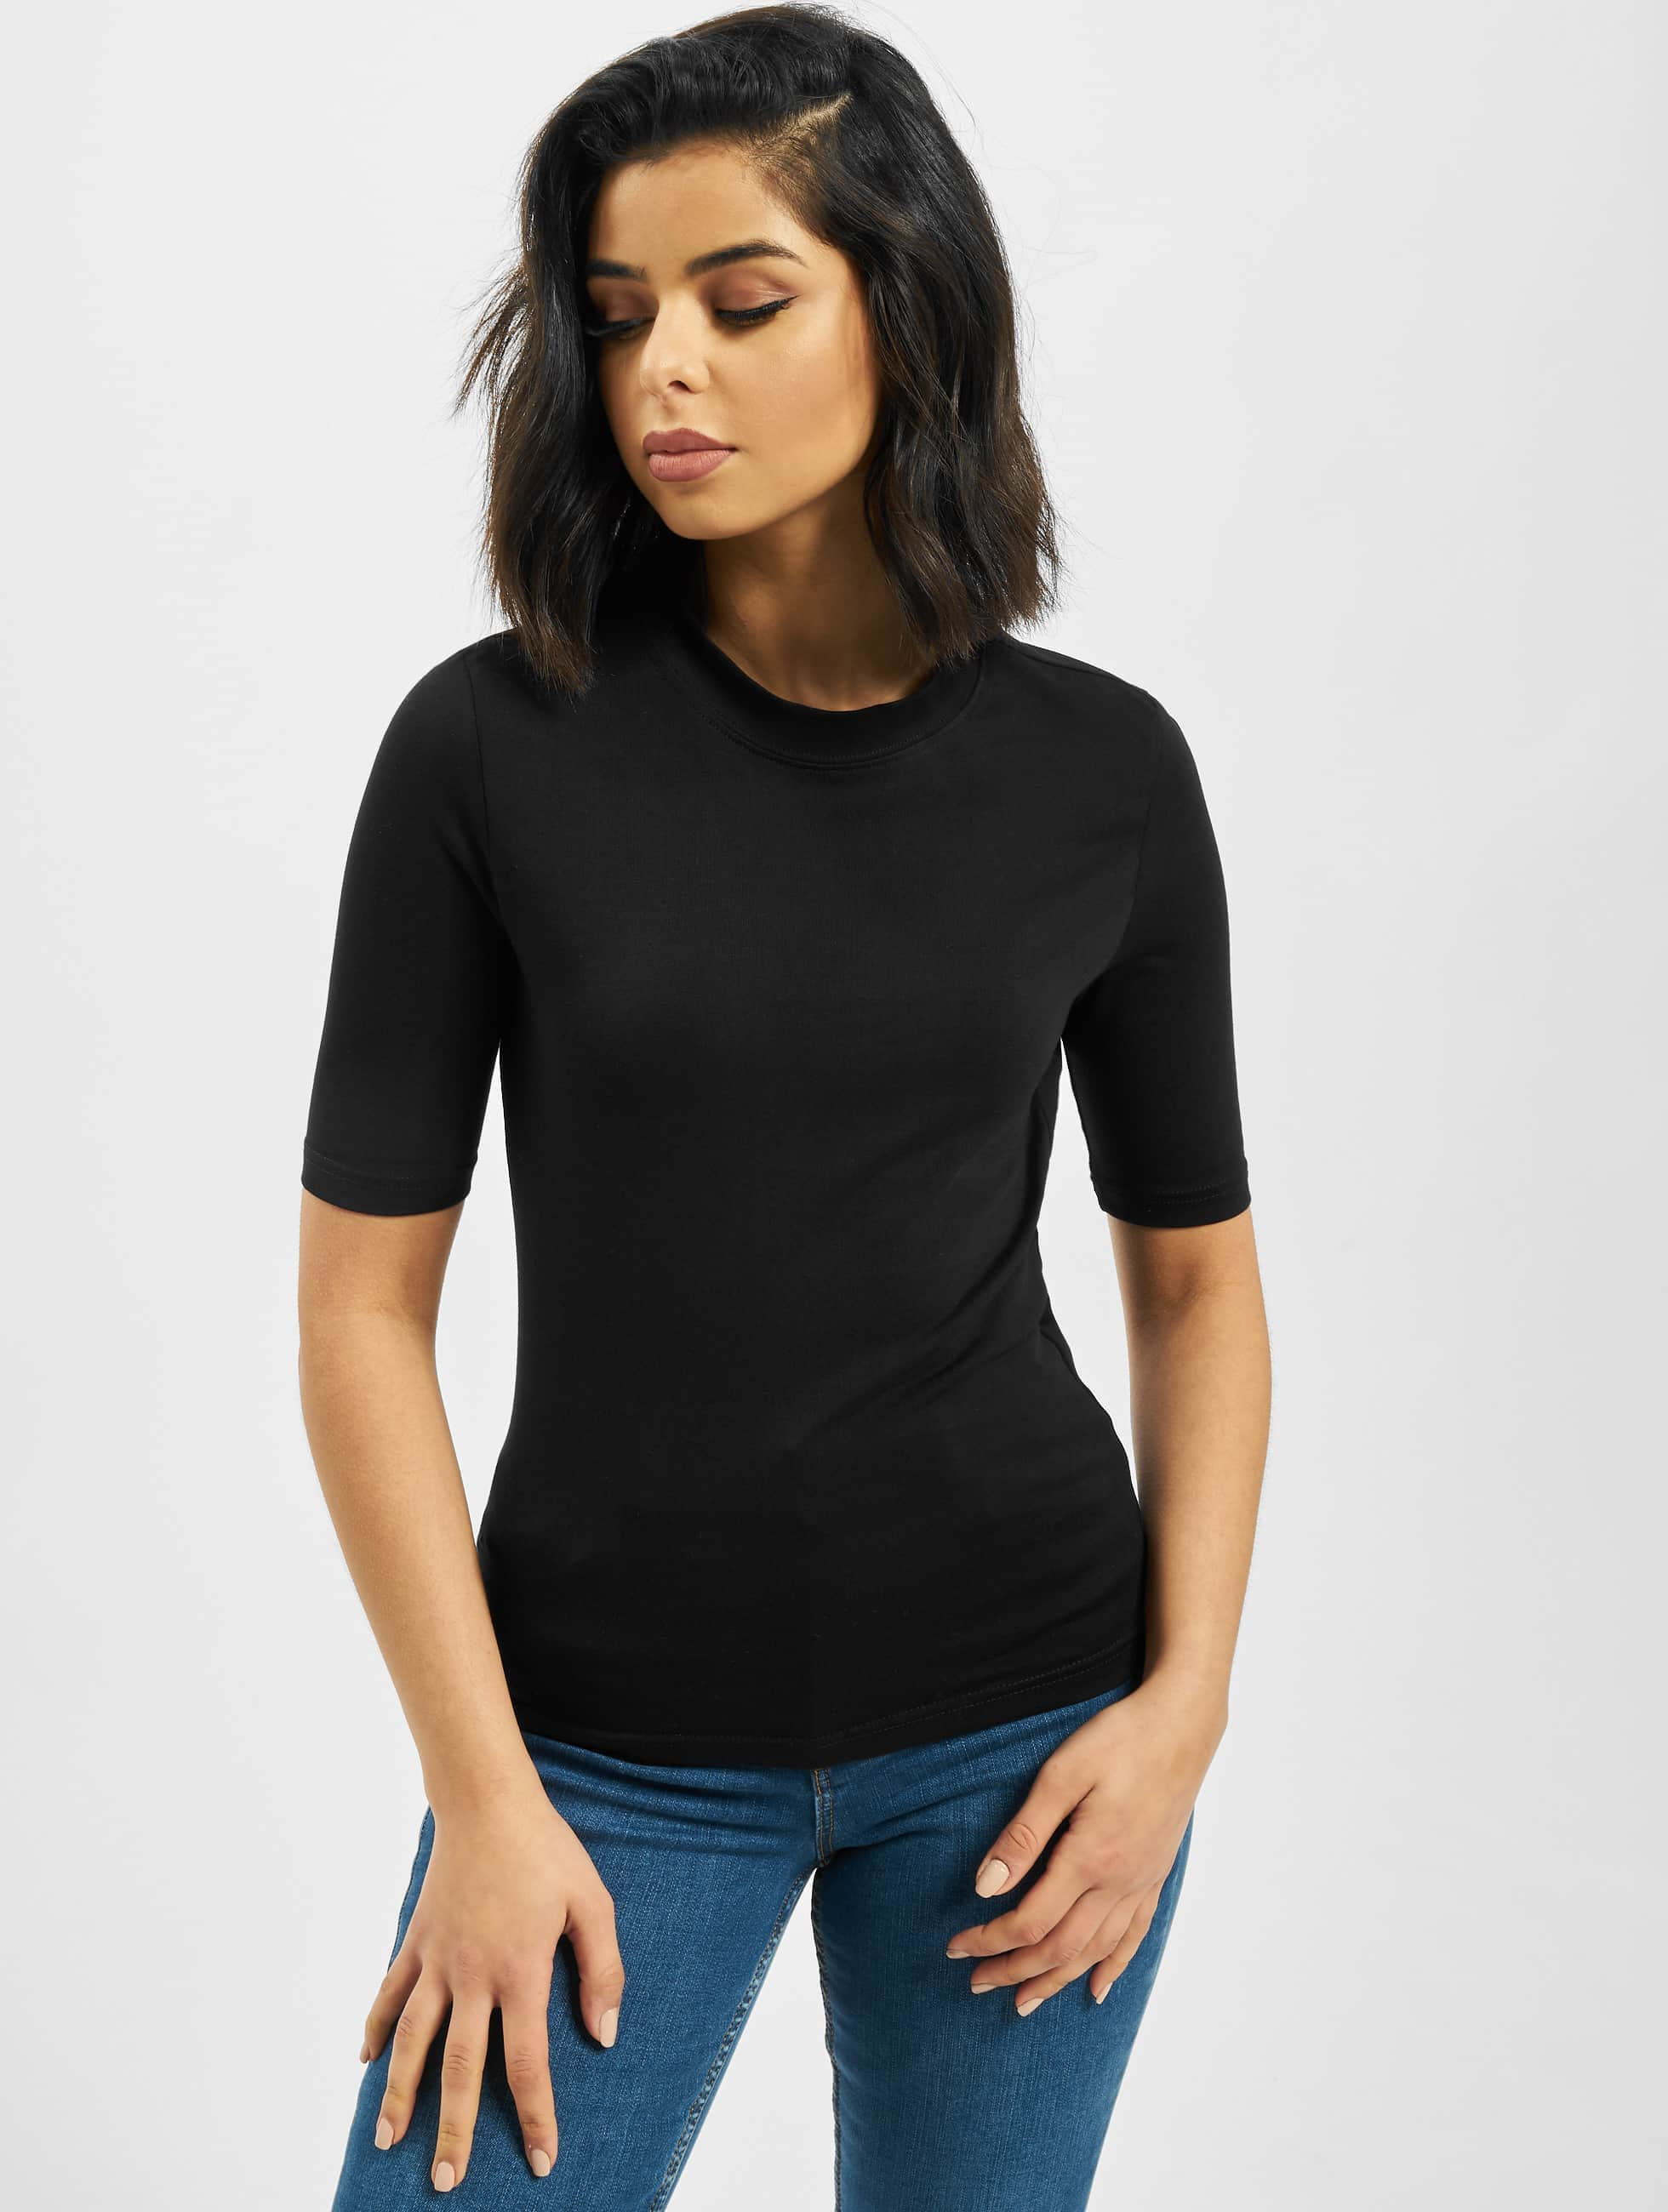 DEF / T-Shirt Raisa in black S